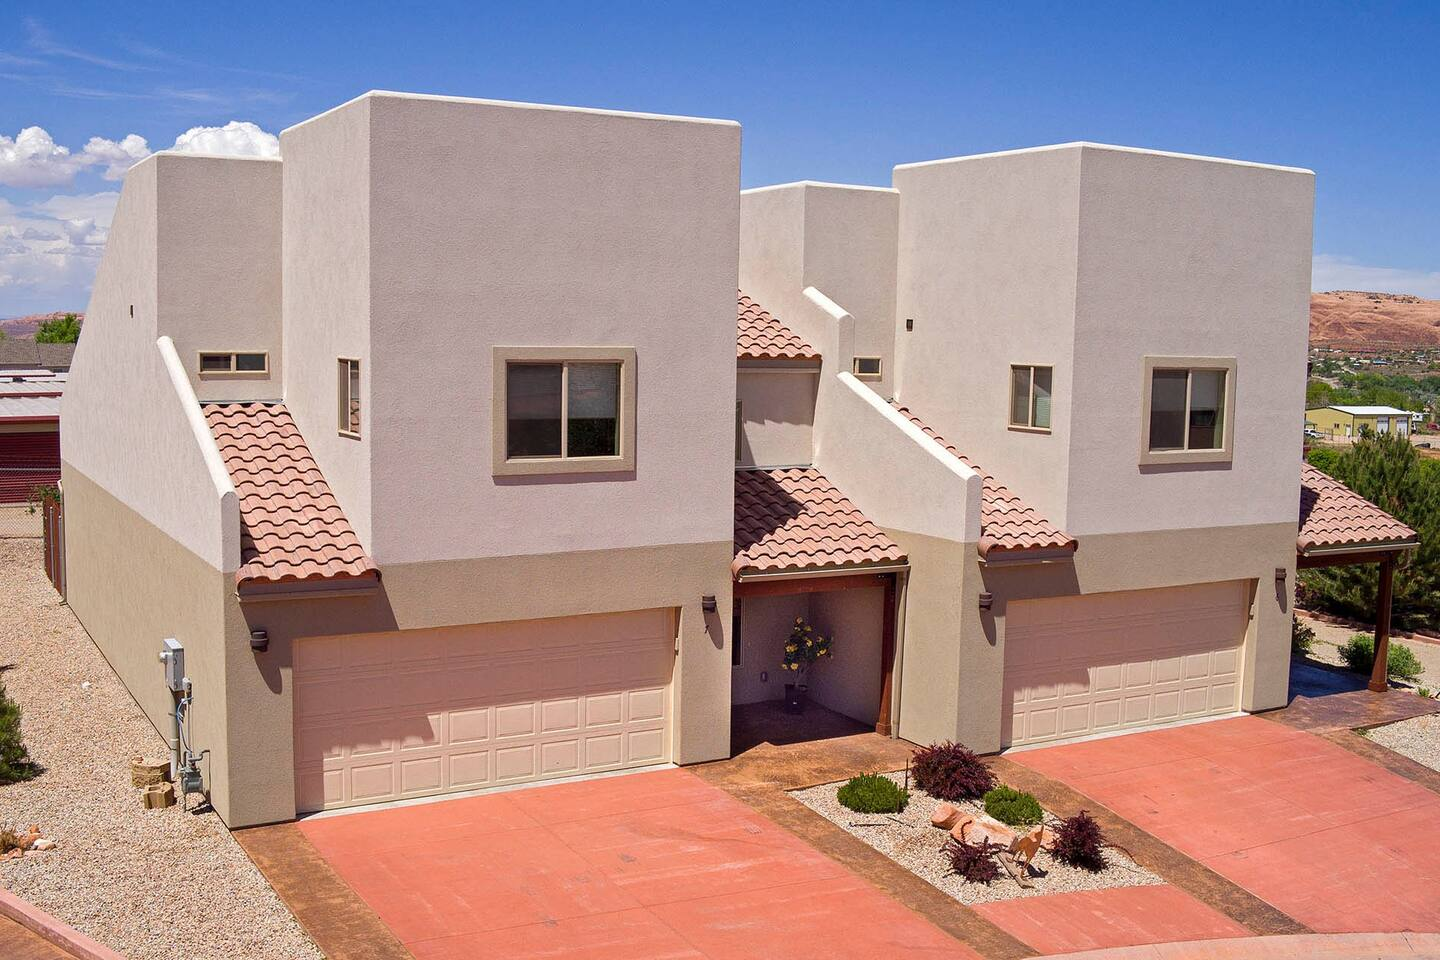 7 Desert Wind Drive | Unit is on the left